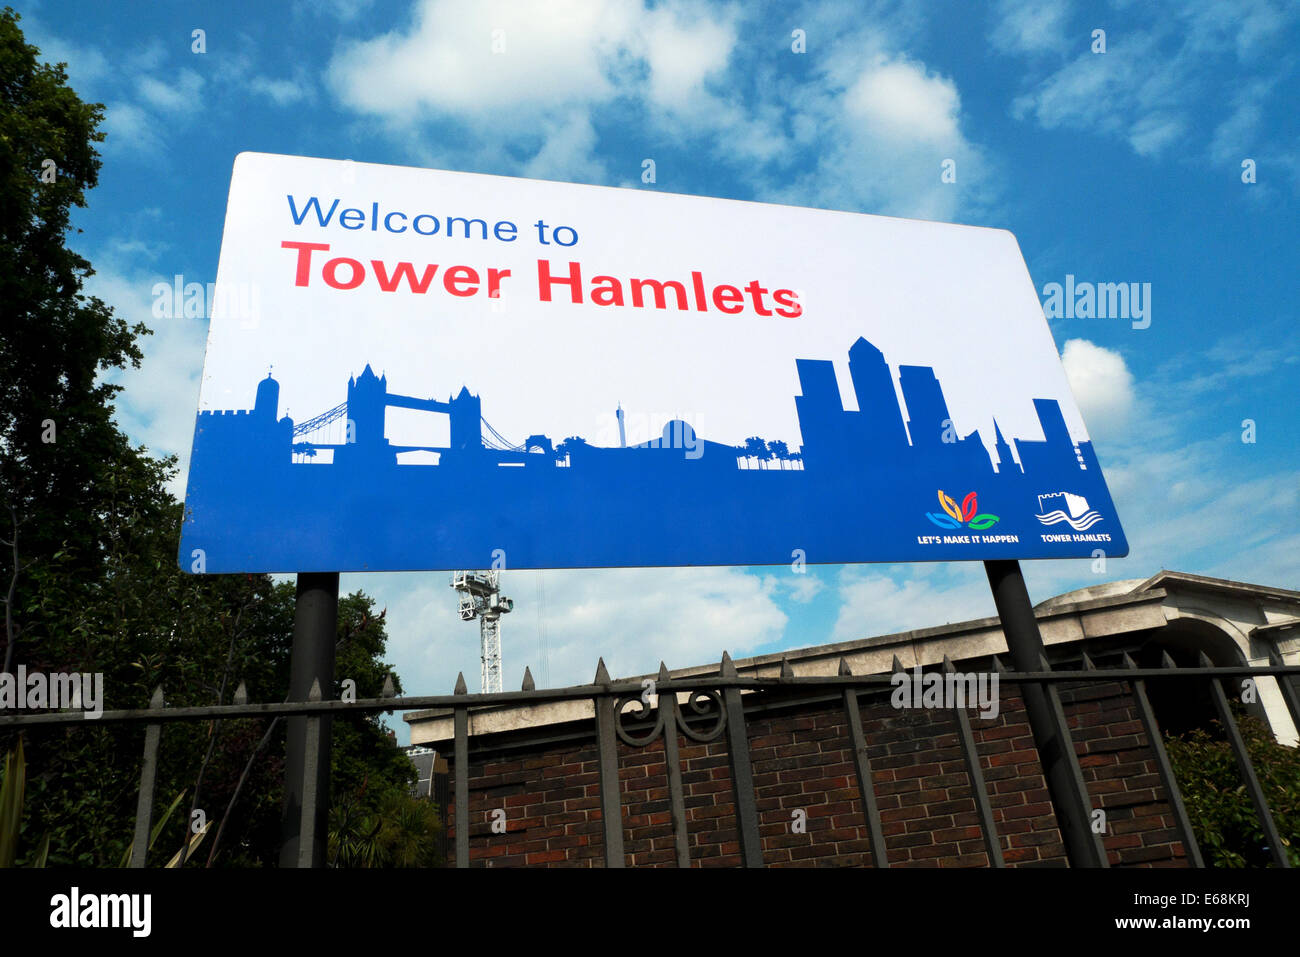 Welcome to Tower Hamlets billboard sign near the 'Tower of London' in the City of London England UK    KATHY - Stock Image